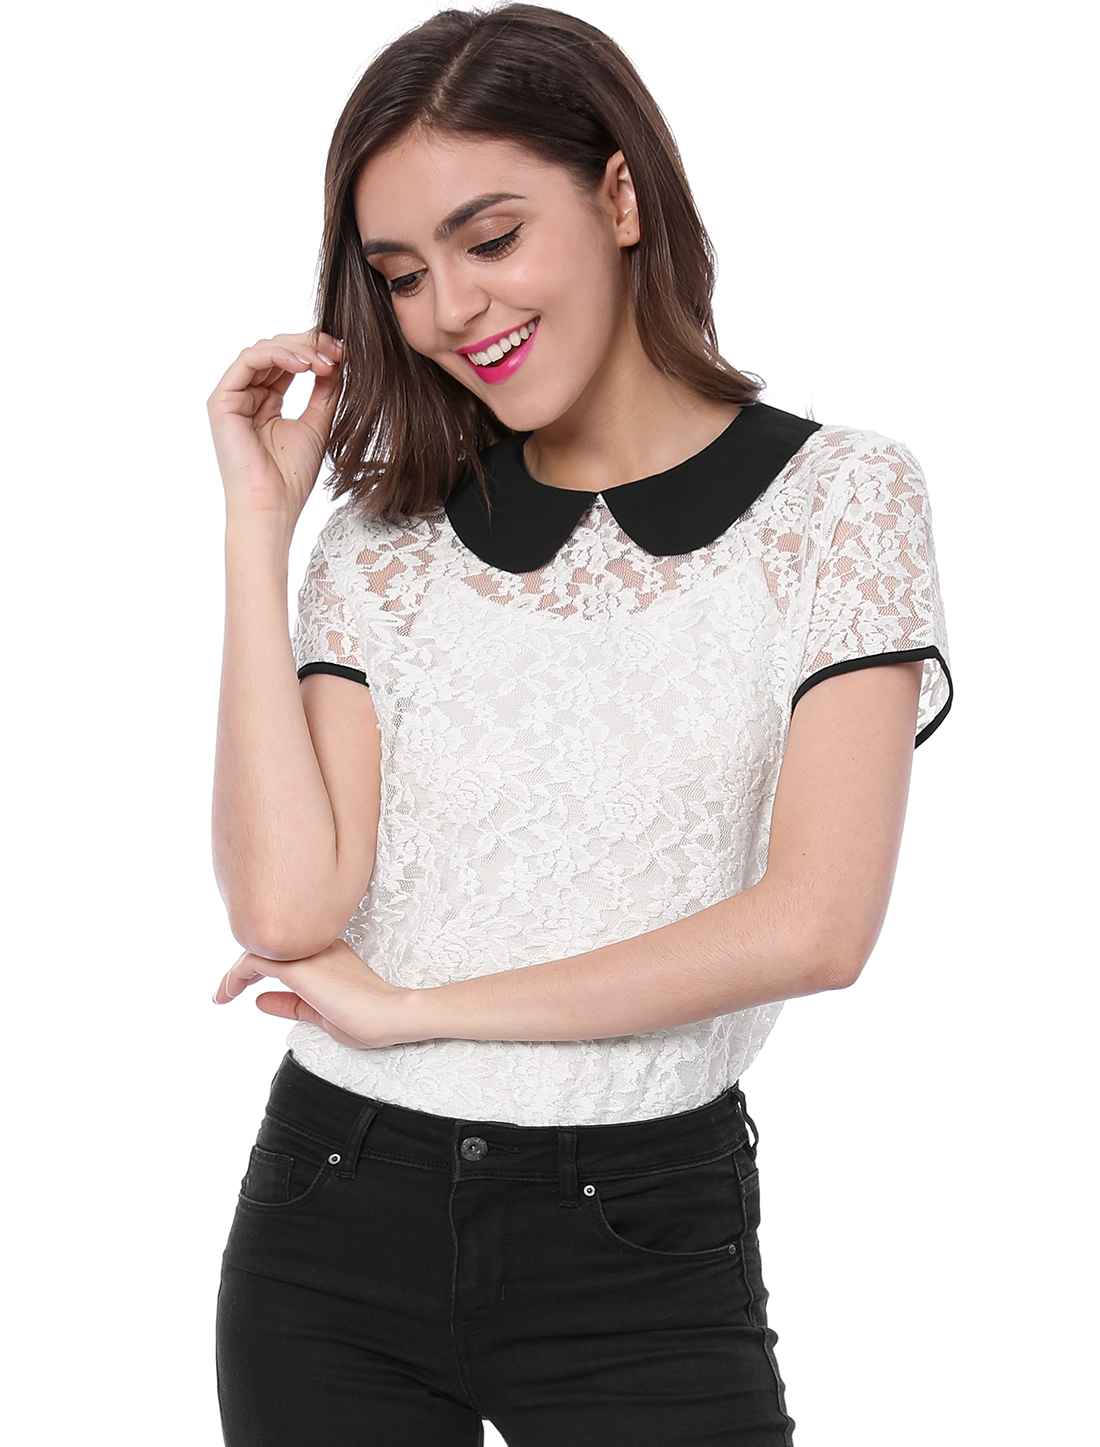 Women See Through Contrast Peter Pan Collar Lace Top White M